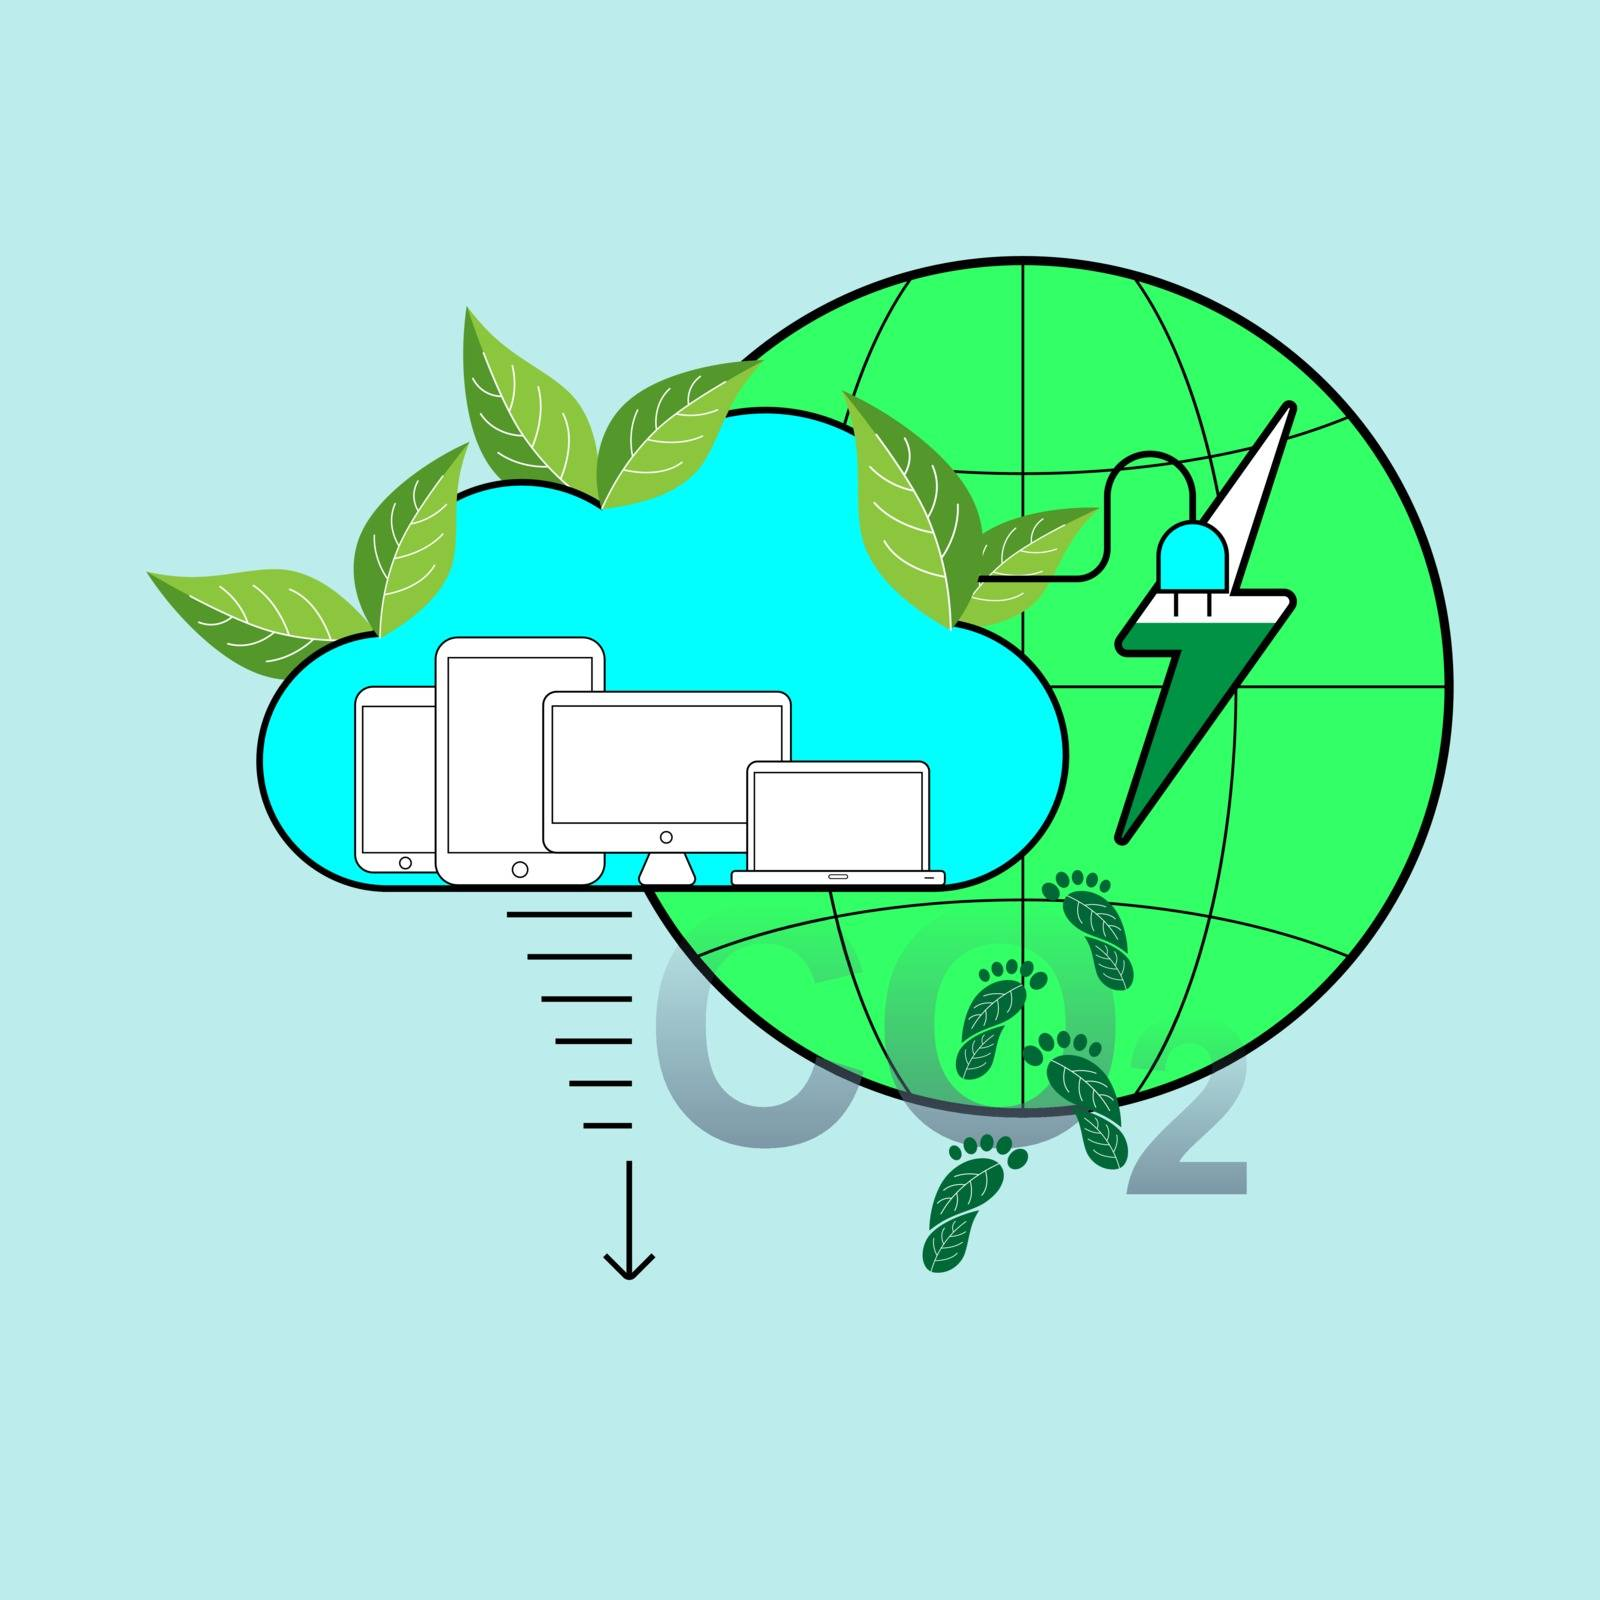 Cloud computing technology save energy and reduce carbon footprint. Environmental friendly cloud service concept. Vector illustration.